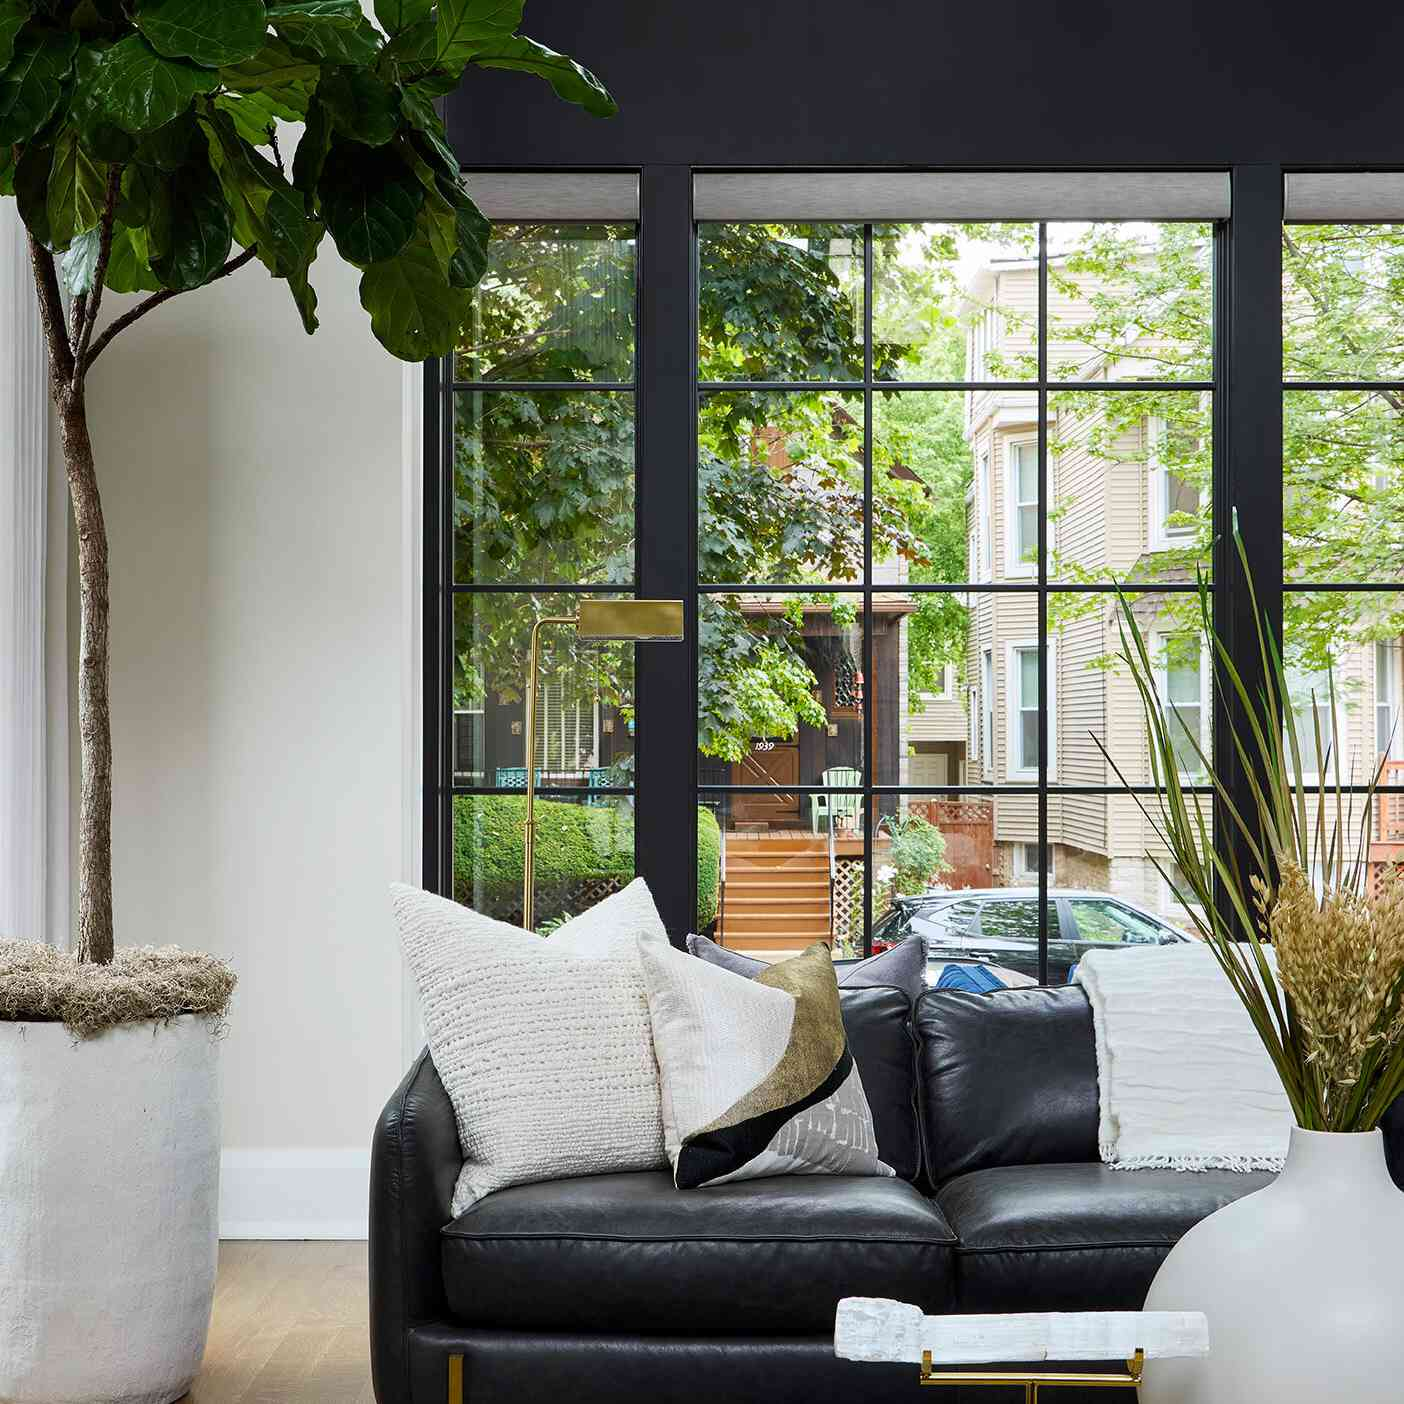 A living room with a black leather couch and a large fiddle leaf fig tree